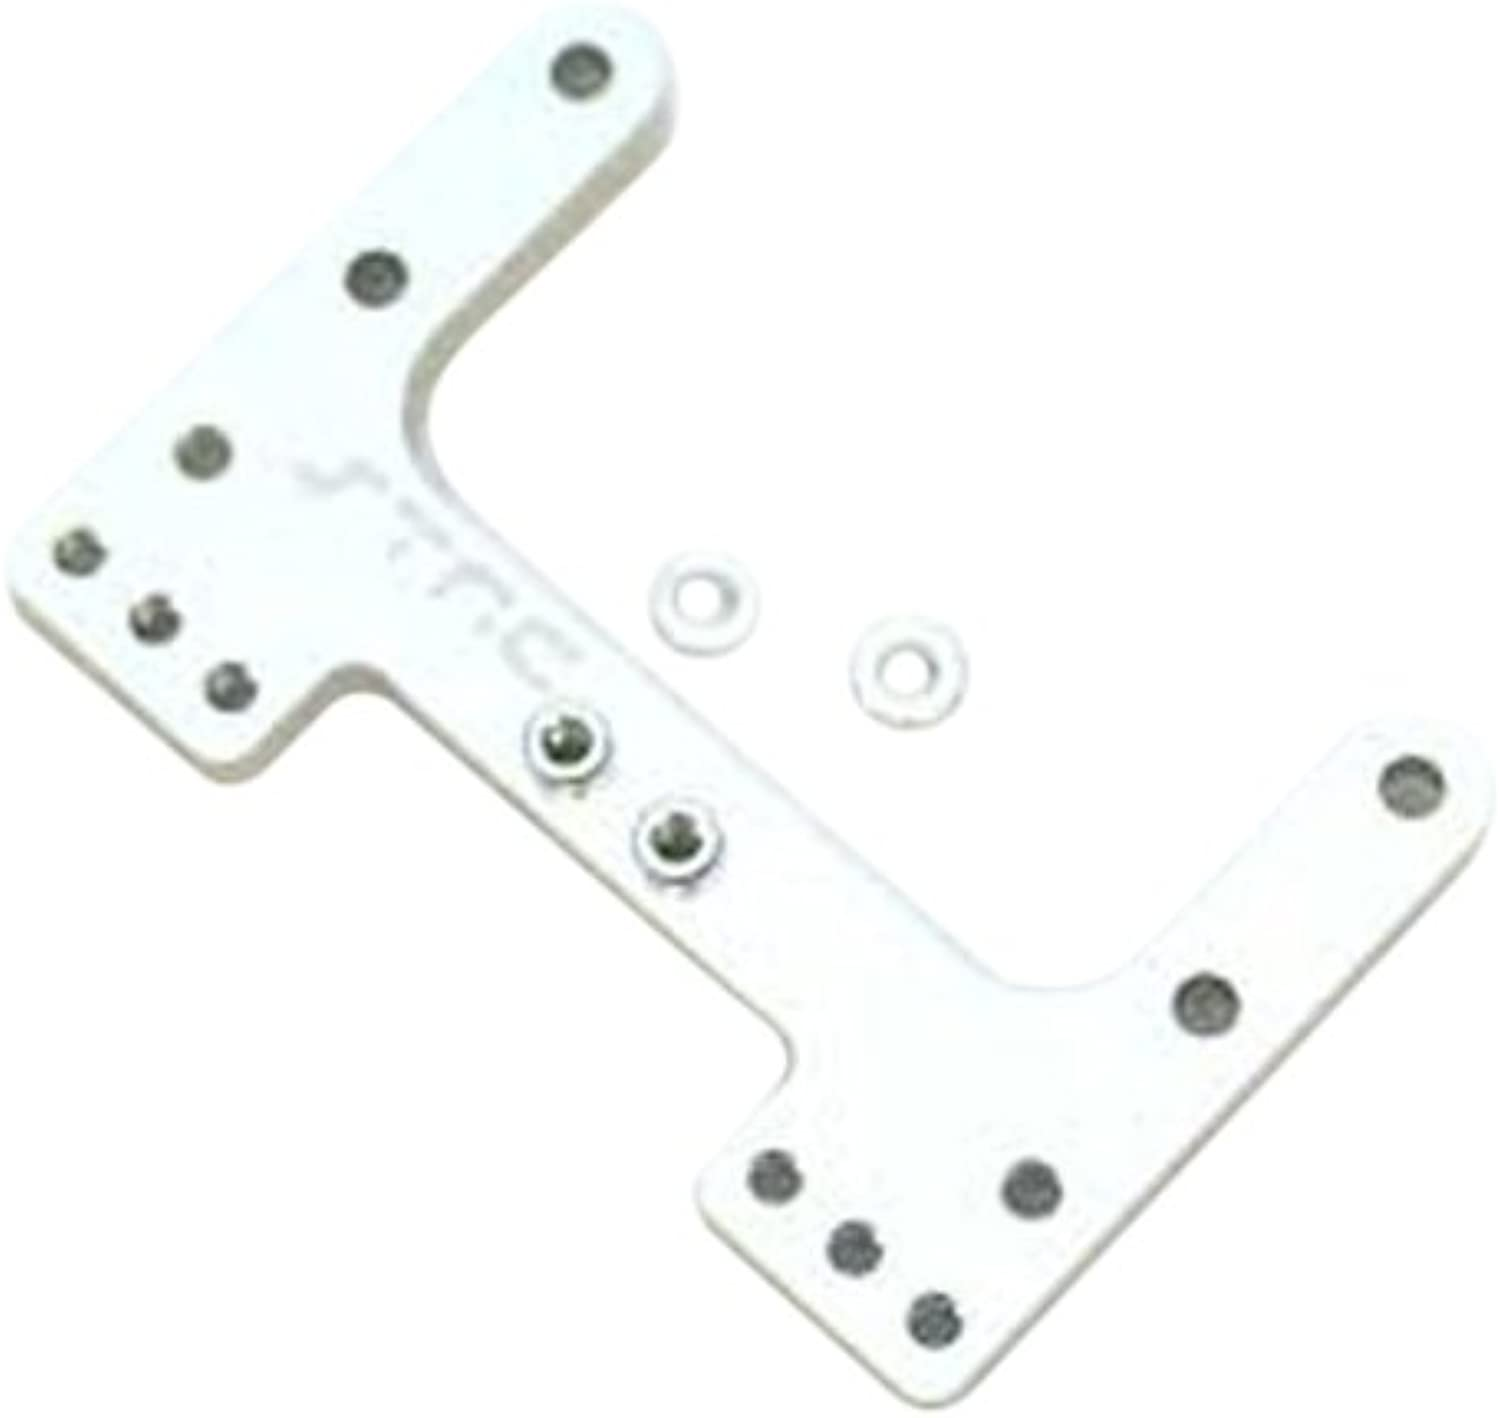 ST Racing Concepts STC9564S Aluminium Rear Camber Link Plate for The SC10, B4 and T4 (Silver)